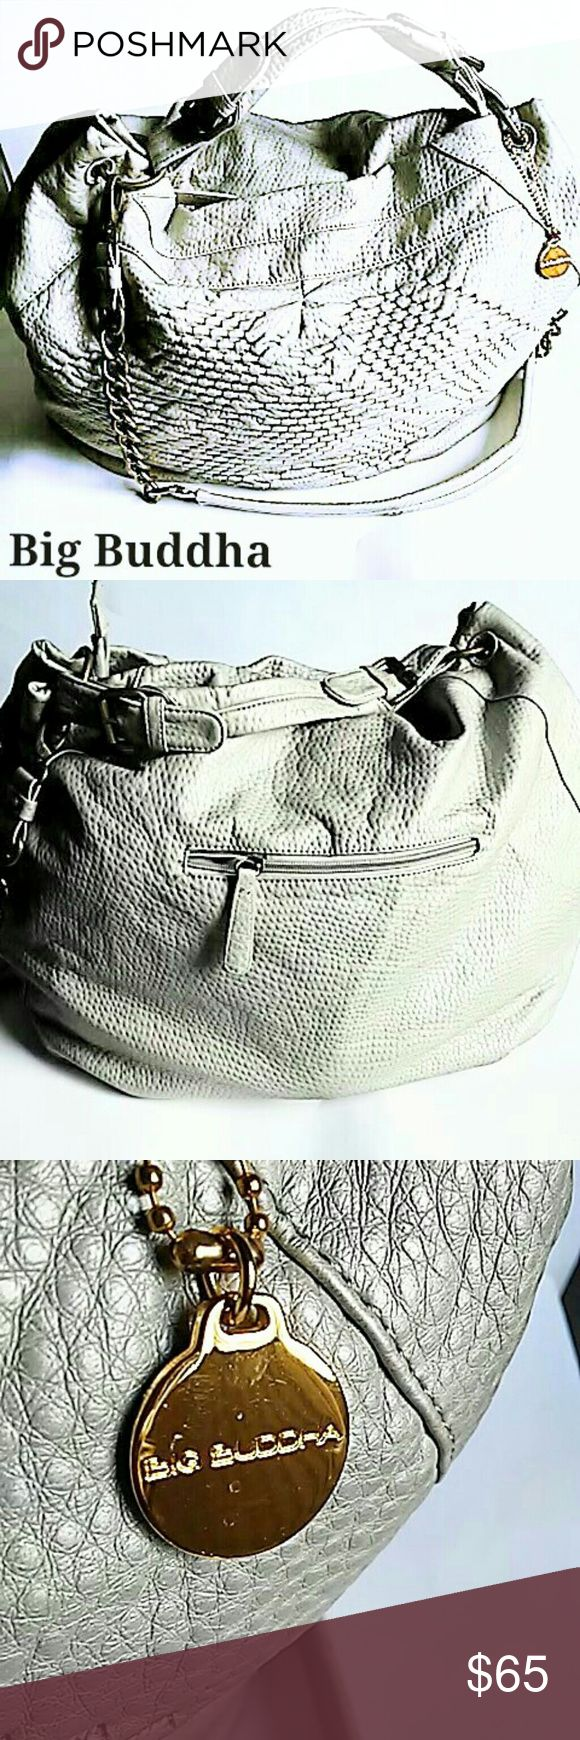 """GORGEOUS BIG BUDDHA BAG This Big Buddha Bag is like new and gorgeous!! Silver/light gray color. Only used a couple of times! Measurements are all approximate short strap 12"""", shoulder strap 37"""", overall bag 19 x 15, top to bottom 14 1/2"""",  bottom 13 x 6 1/2. Zipper pocket on back with 5 inside pockets (2 of them zip) overall bag closure is a zipper. Brass colored hardware with gold tone Big Buddha charm. Best color & texture is pic 5. ASK ALL QUESTIONS B4 YOU BUY! Big Buddha Bags Shoulder…"""